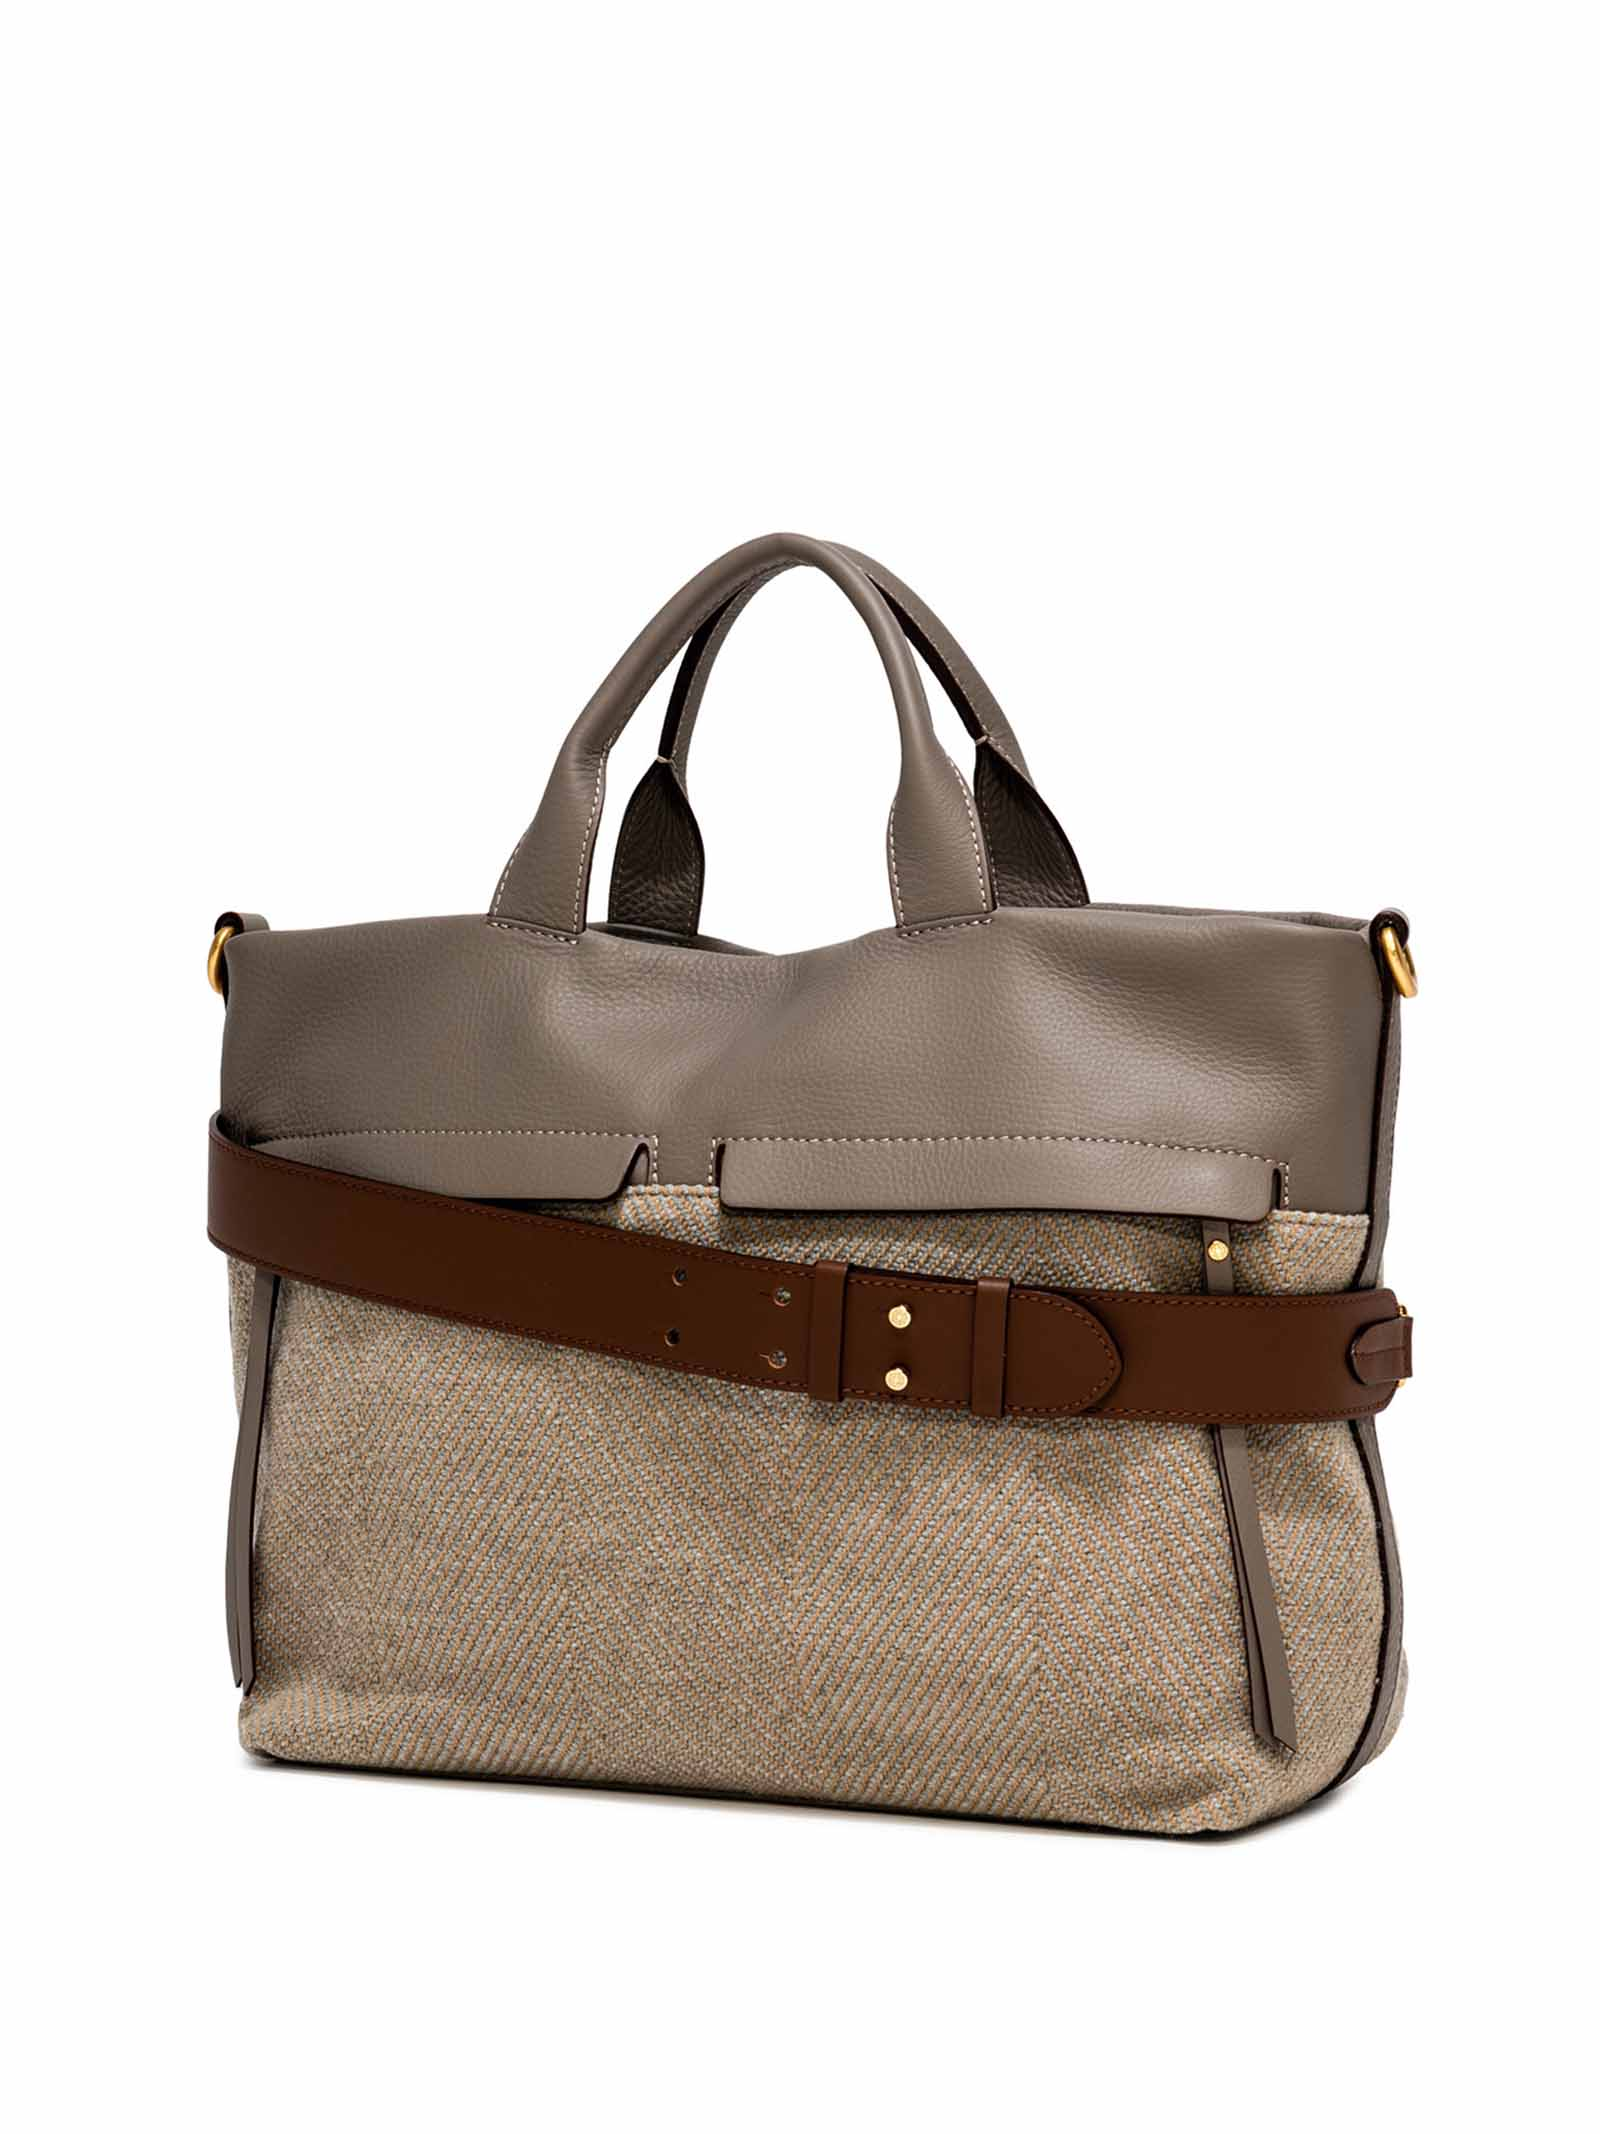 Women's Cross-body Bag Duna In Grey Leather And Herringbone Fabric In Matching With Double Leather Handles And Adjustable And Detachable Cross-body leather Strap Gianni Chiarini   Bags and backpacks   BS823212184